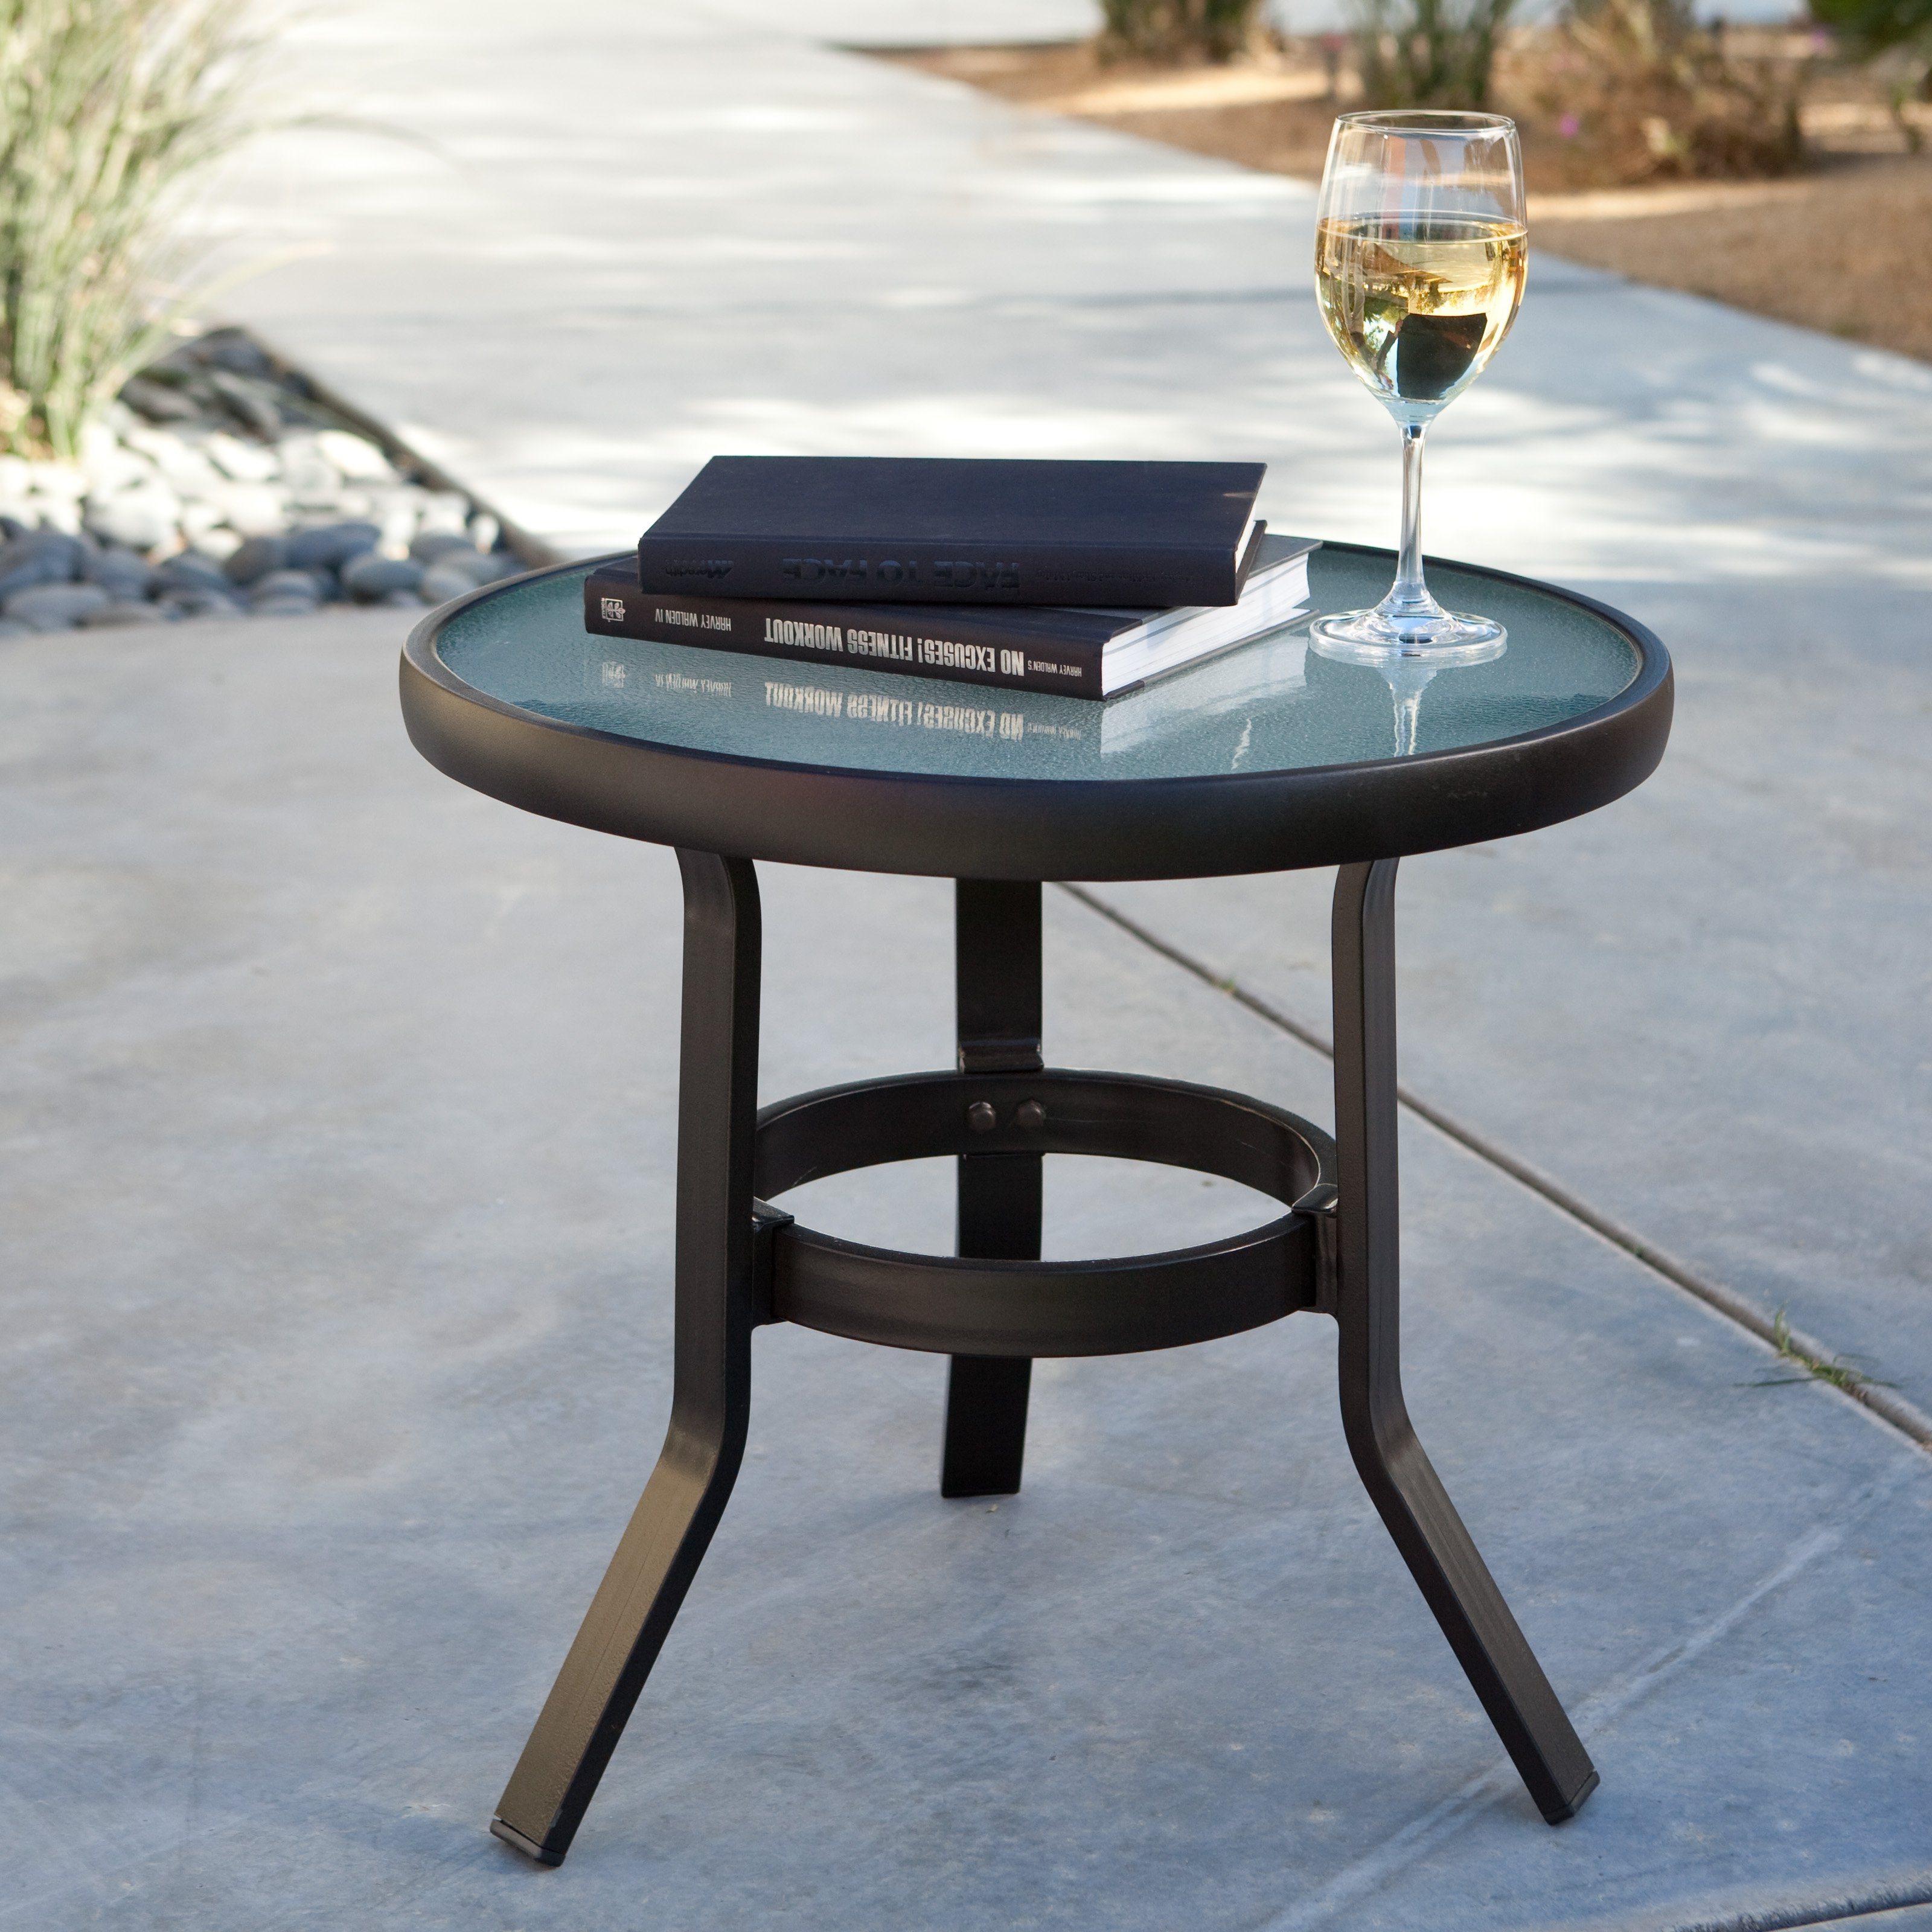 coral coast patio side table accent tables unfinished garden outdoor target wrought iron twin home interior decoration ideas wine rack towel holder with ice bucket round